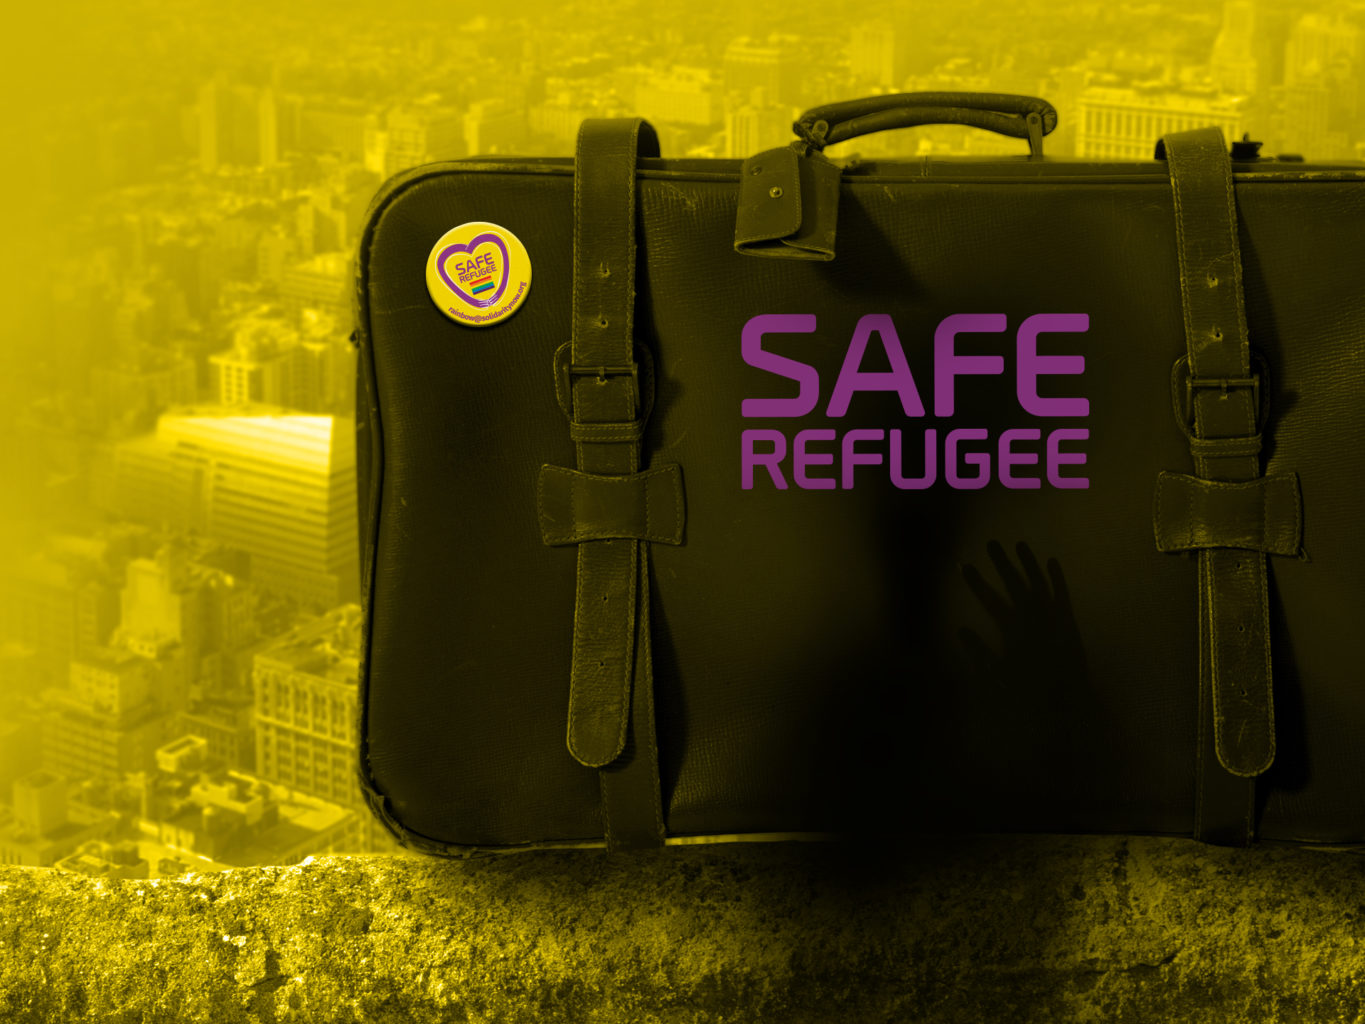 SolidarityNow - Solidarity Center suitcase safe refugee